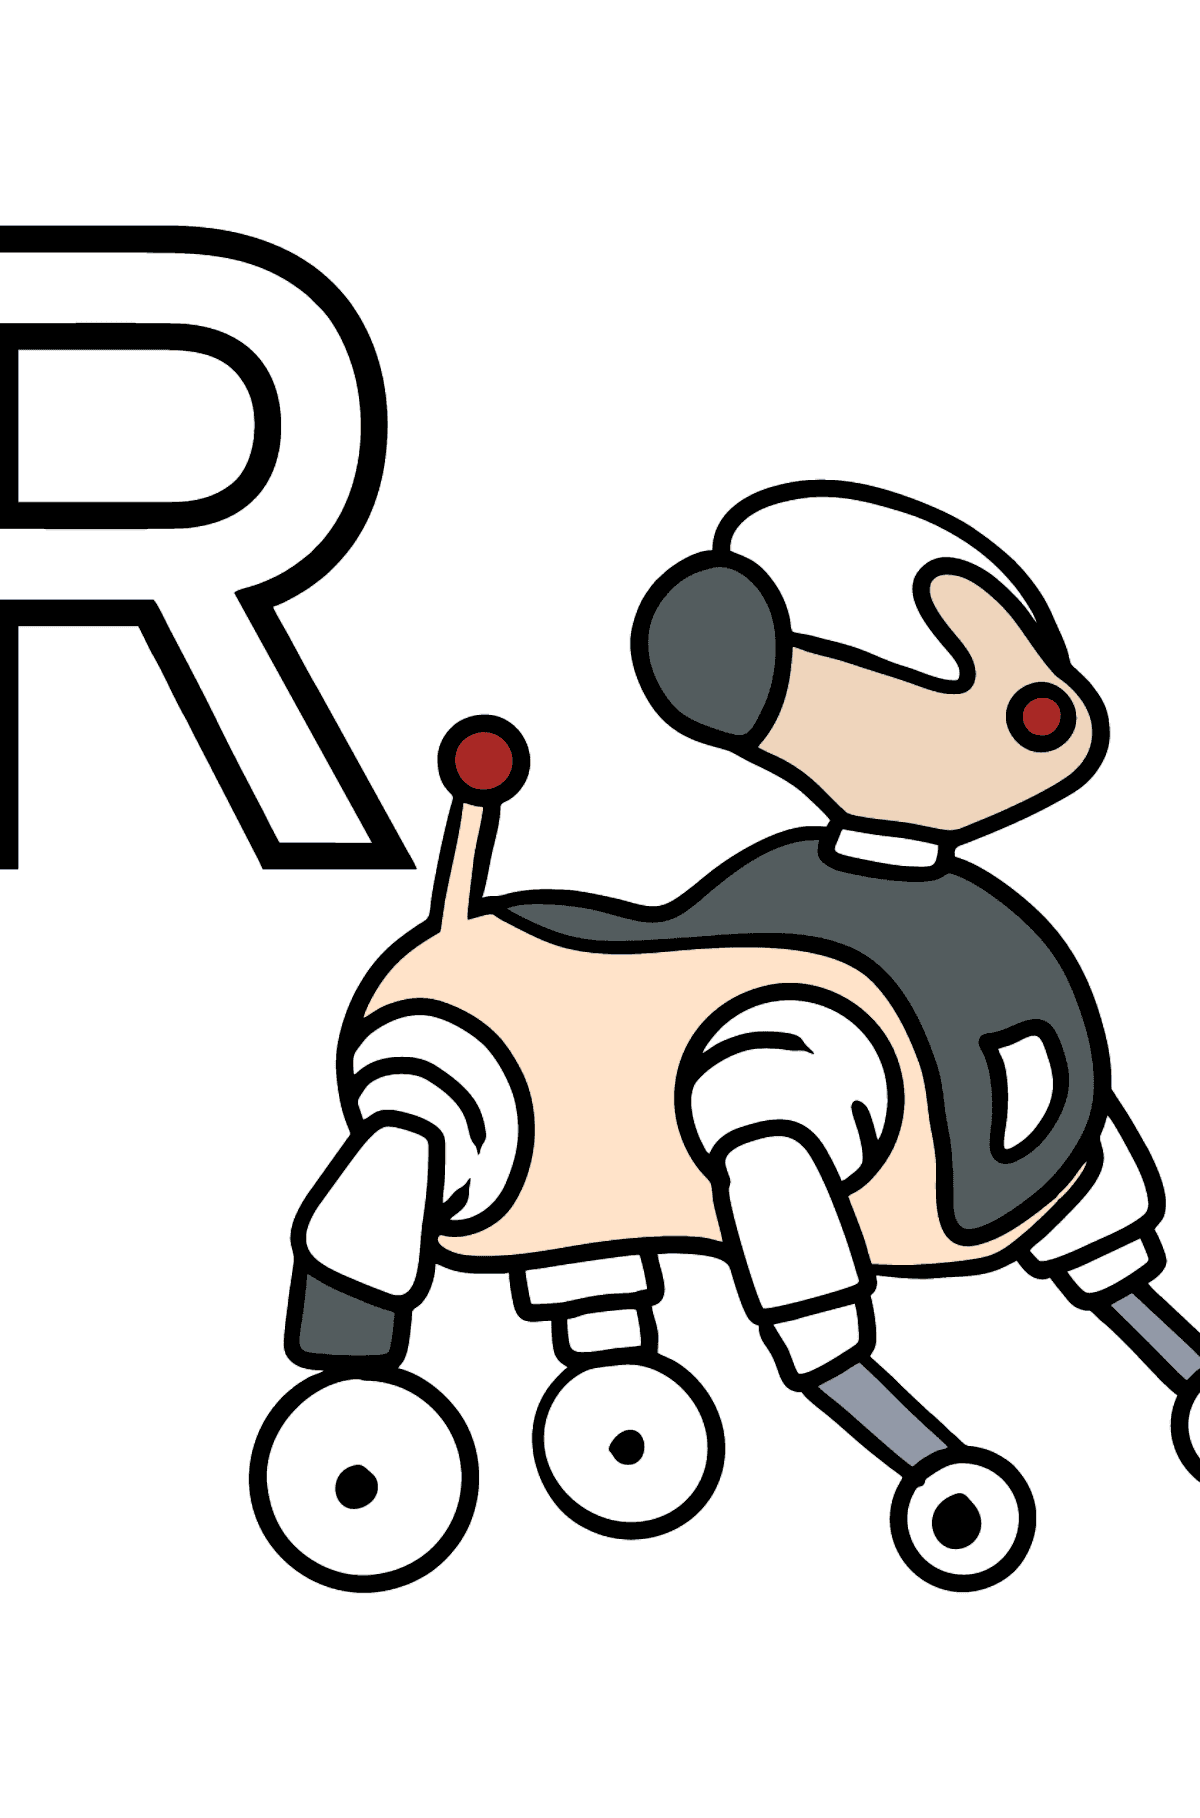 Spanish Letter R coloring pages - ROBOT - Coloring Pages for Kids